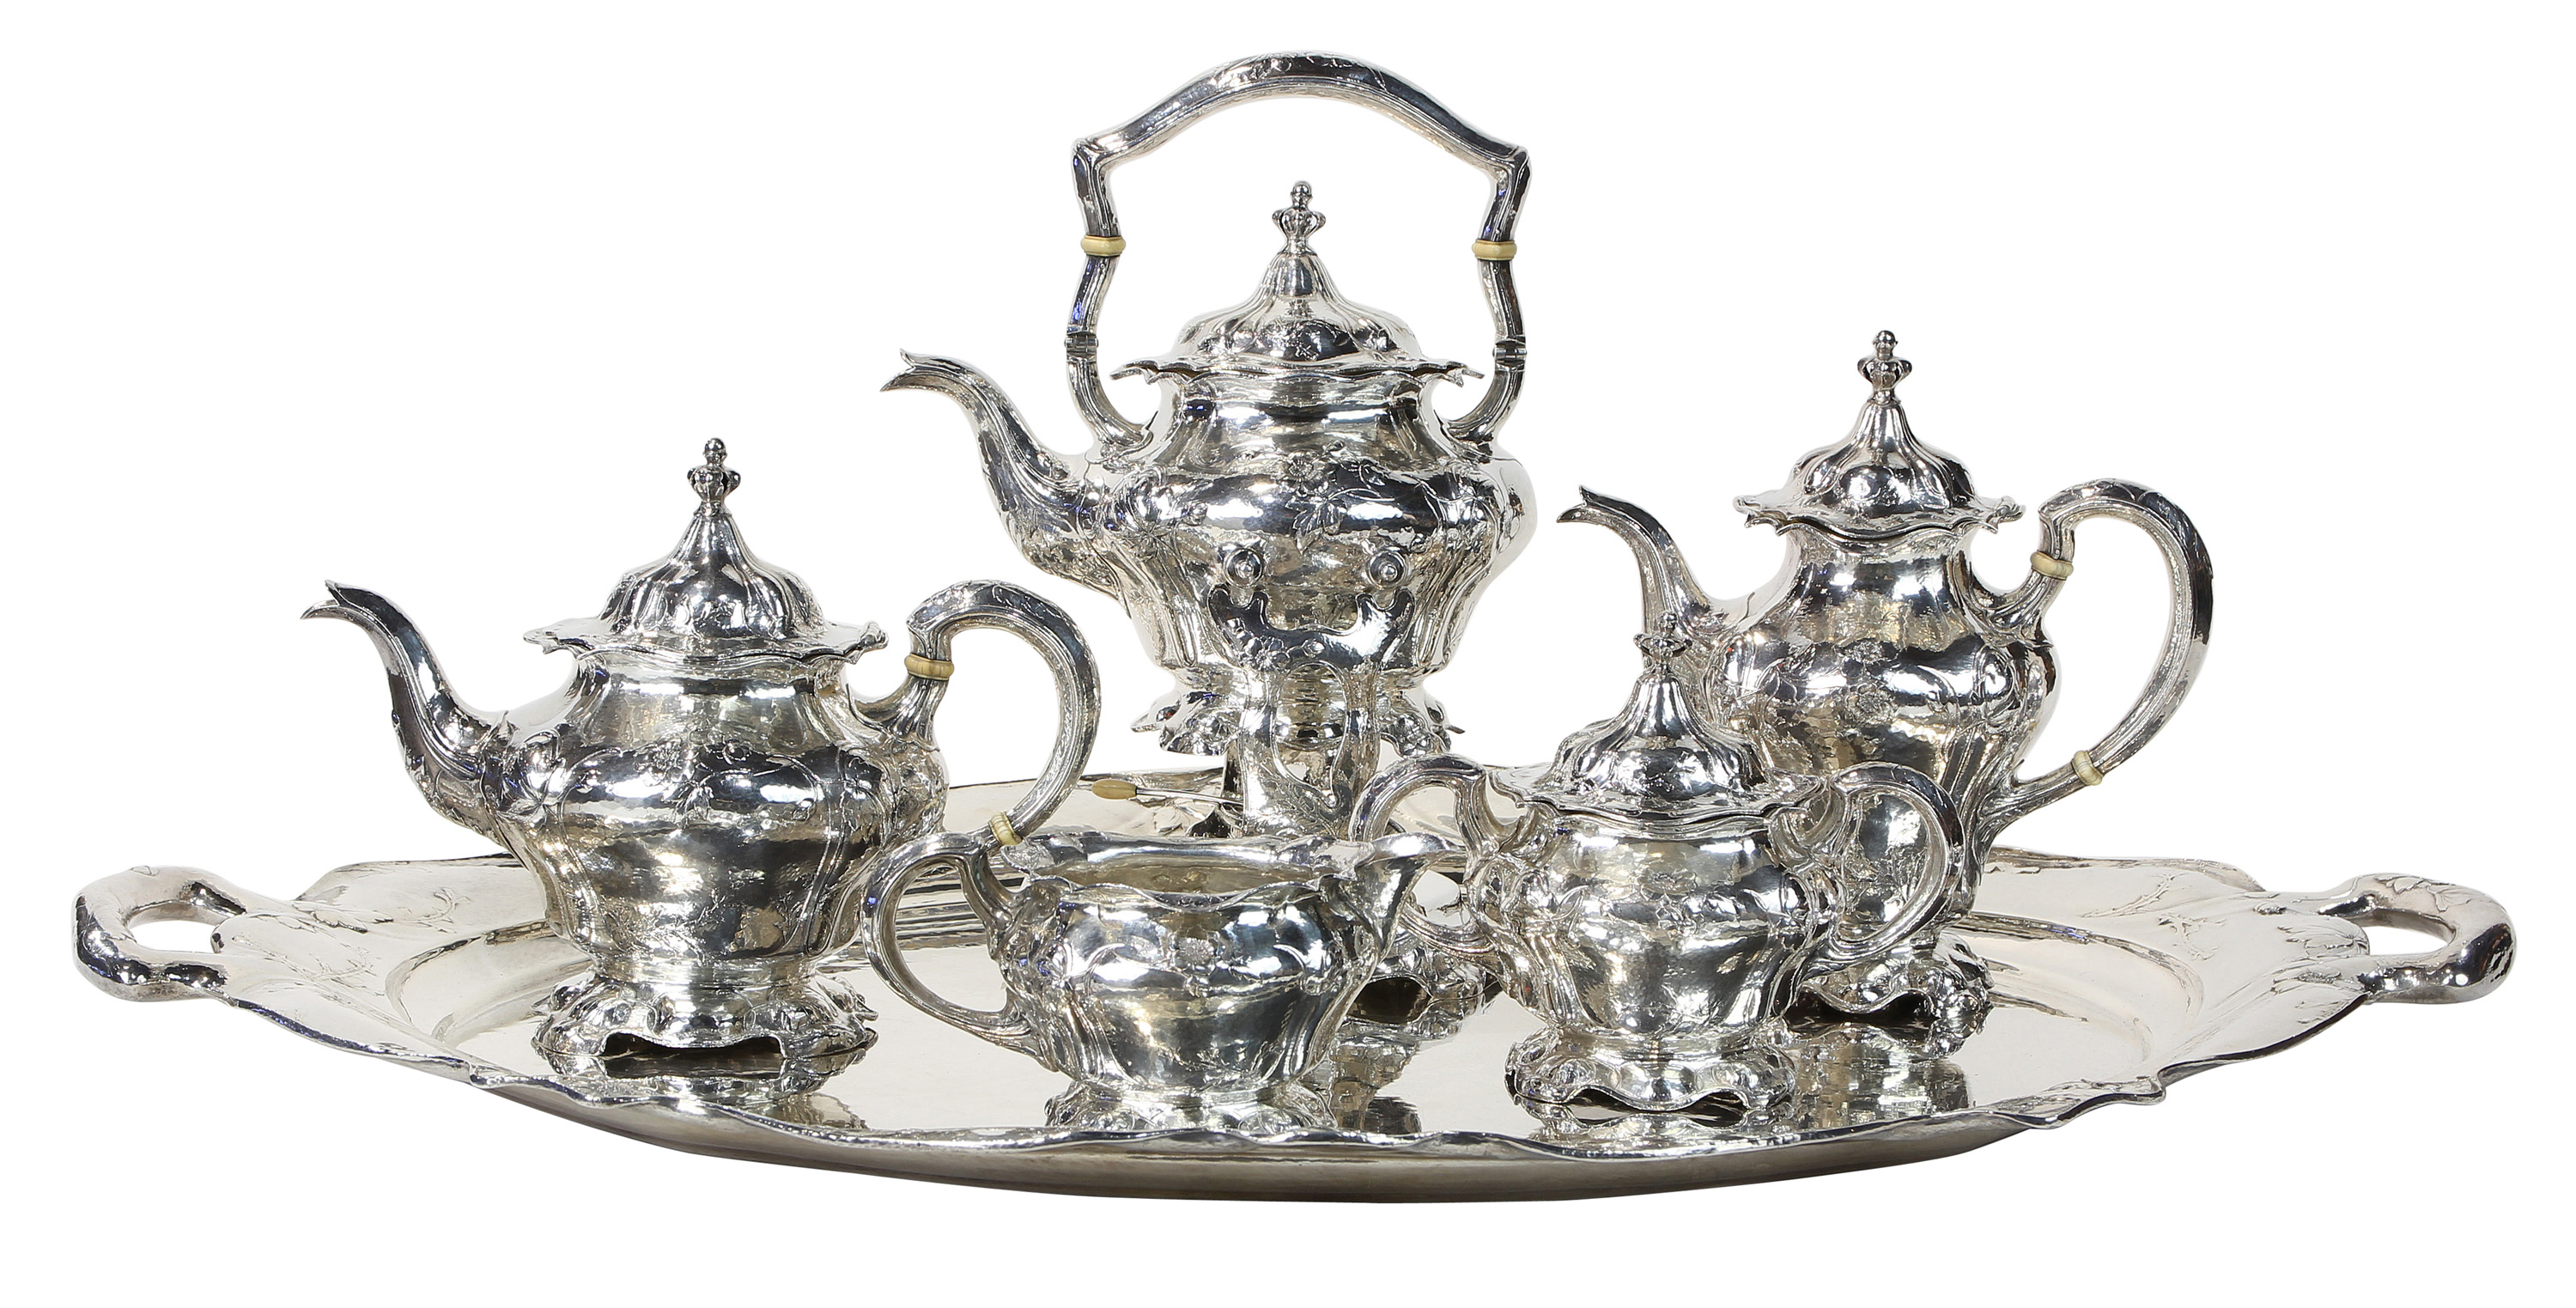 Clars to auction world-class fine art, special collections, Sept. 19-20